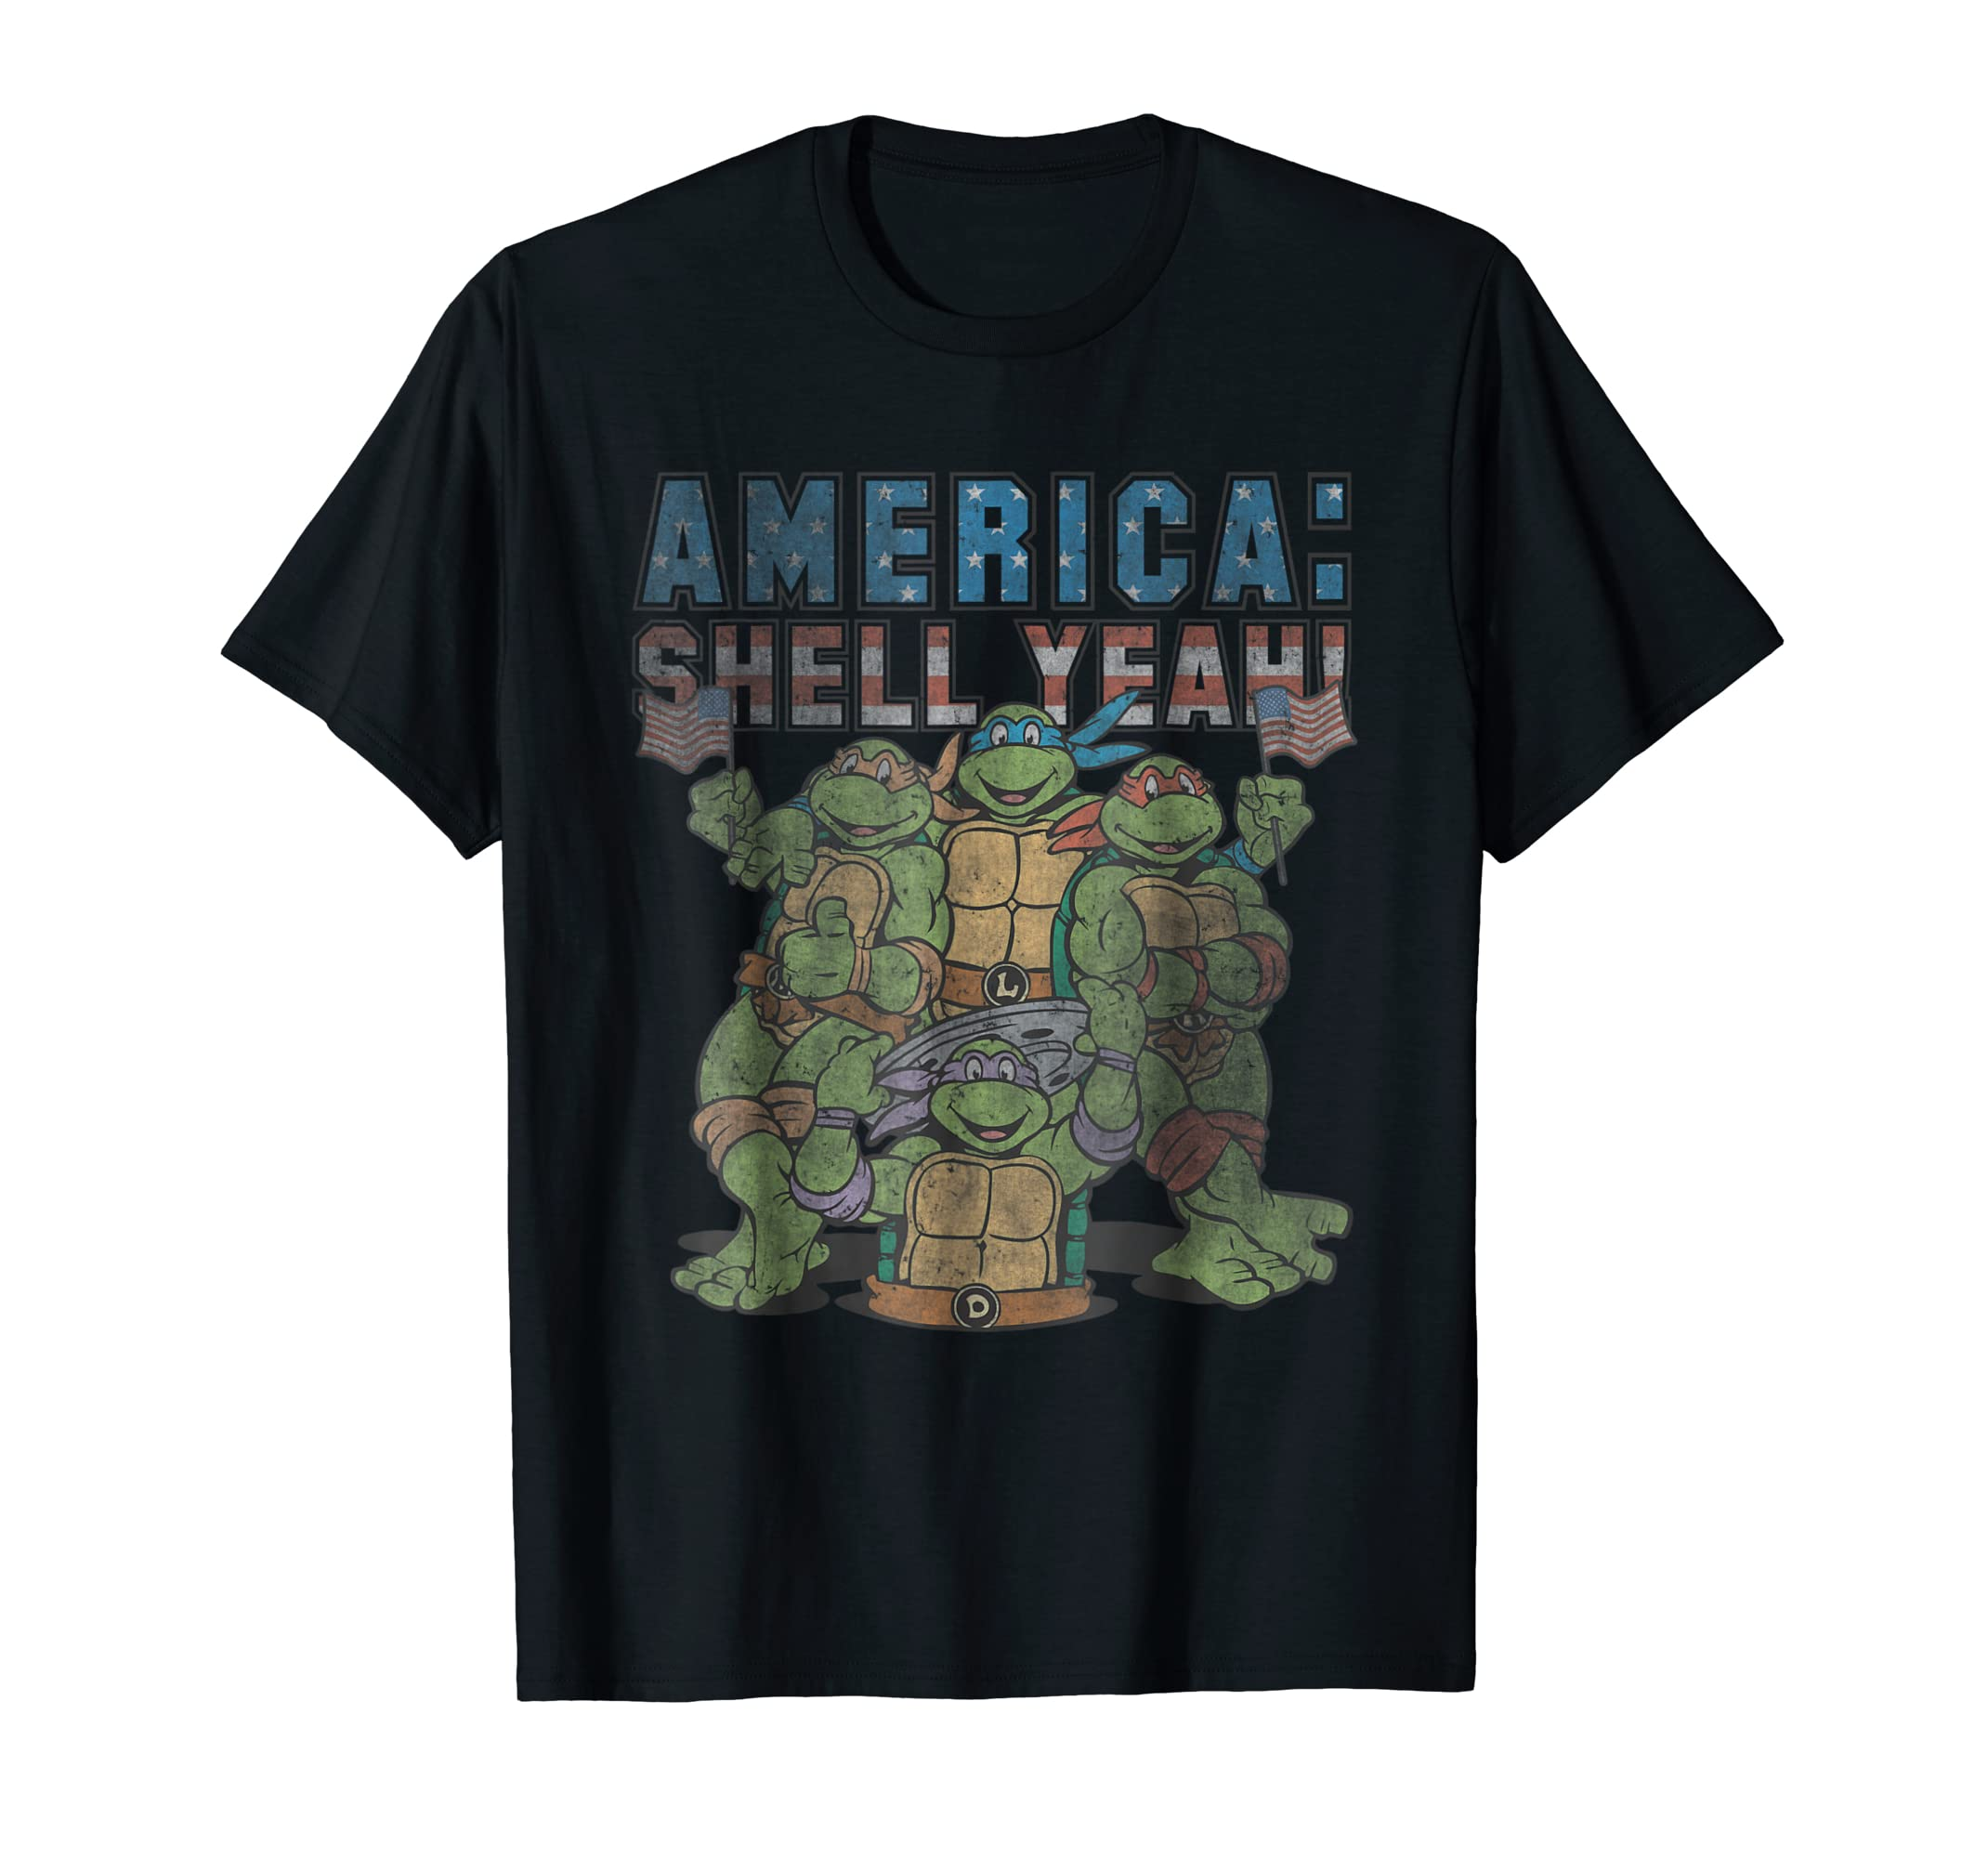 Teenage Mutant Ninja Turtles America: Shell Yeah! T-Shirt-Men's T-Shirt-Black